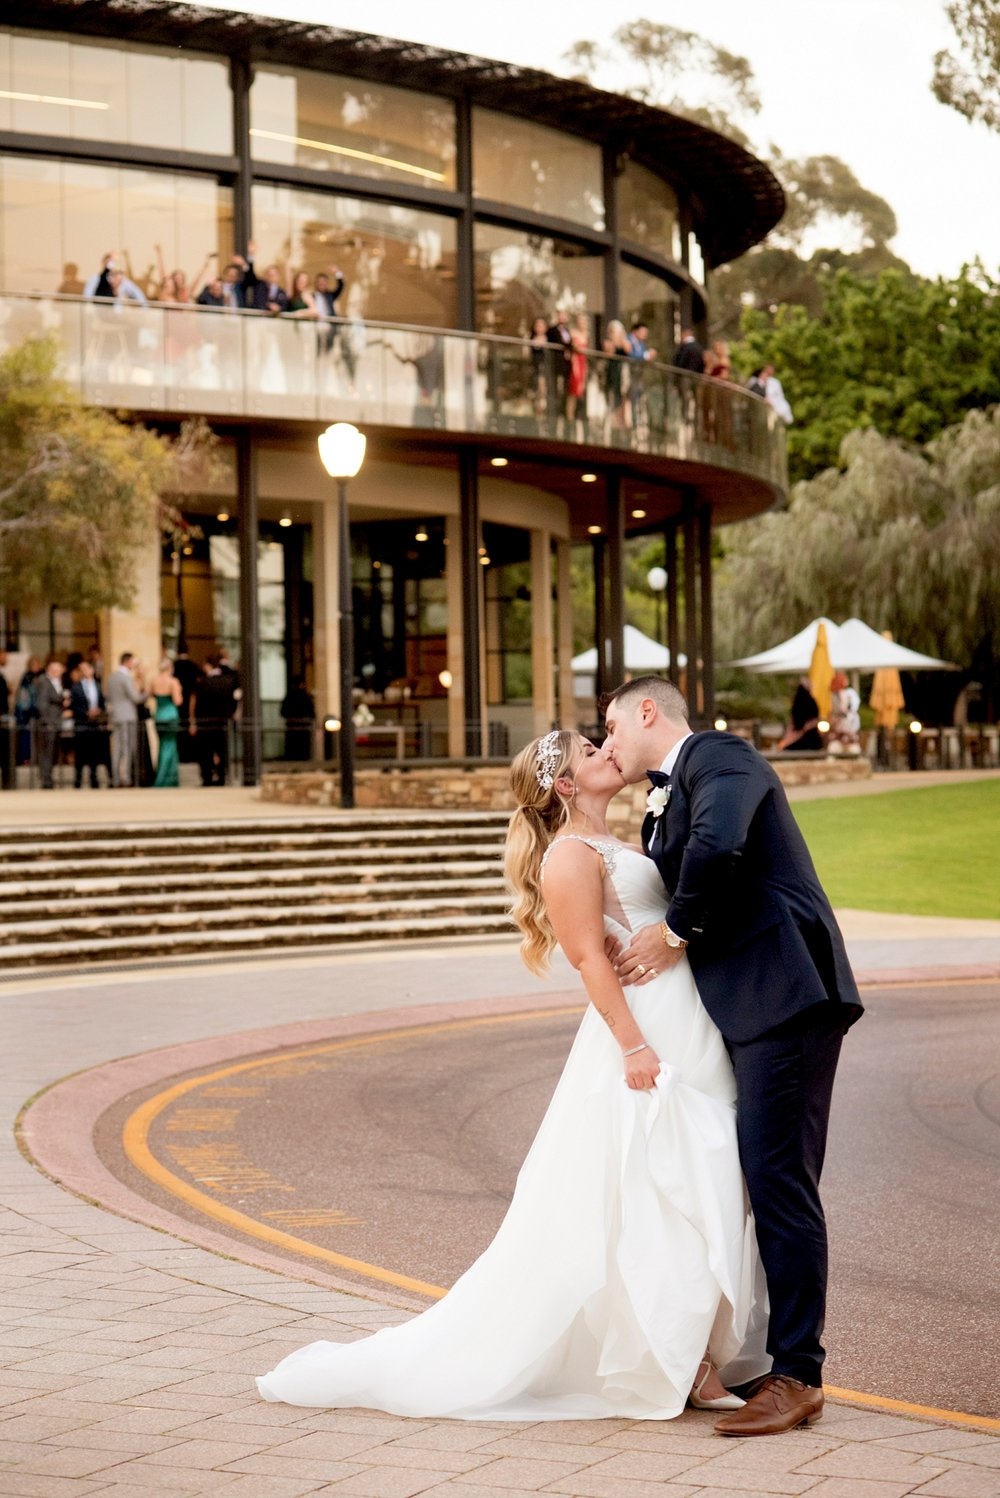 38_kings park wedding perth.jpg